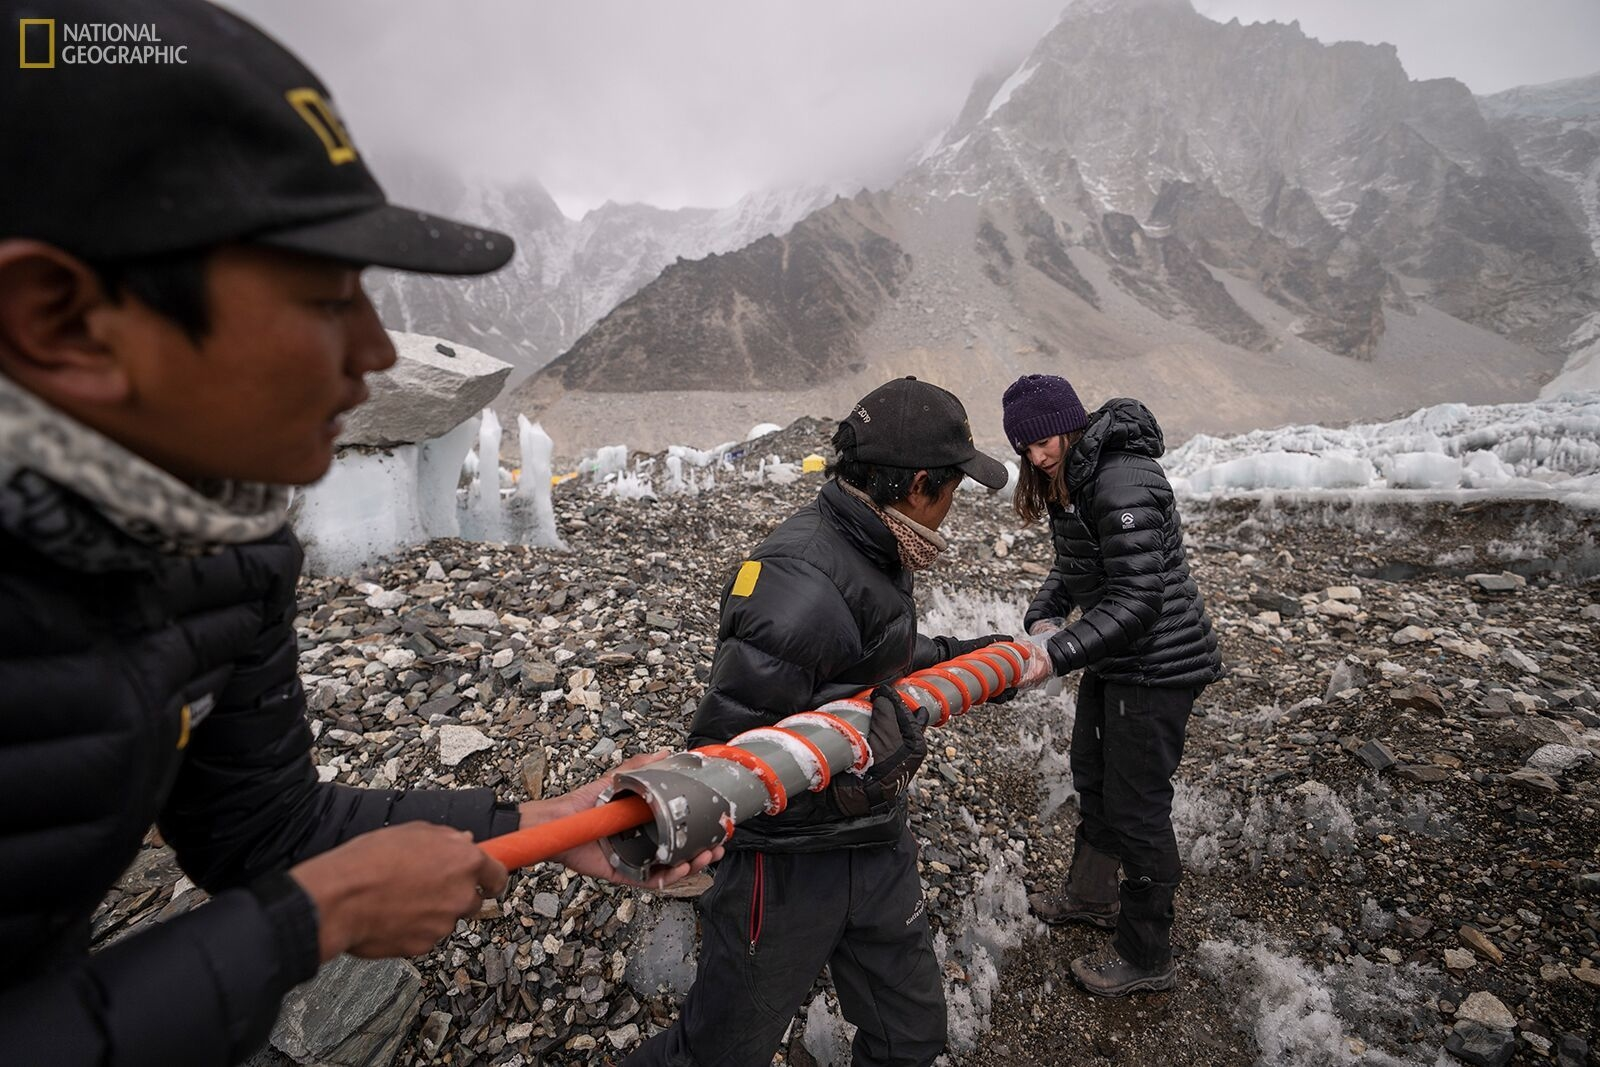 Mount Everest expedition installs highest weather stations on Earth | DeviceDaily.com